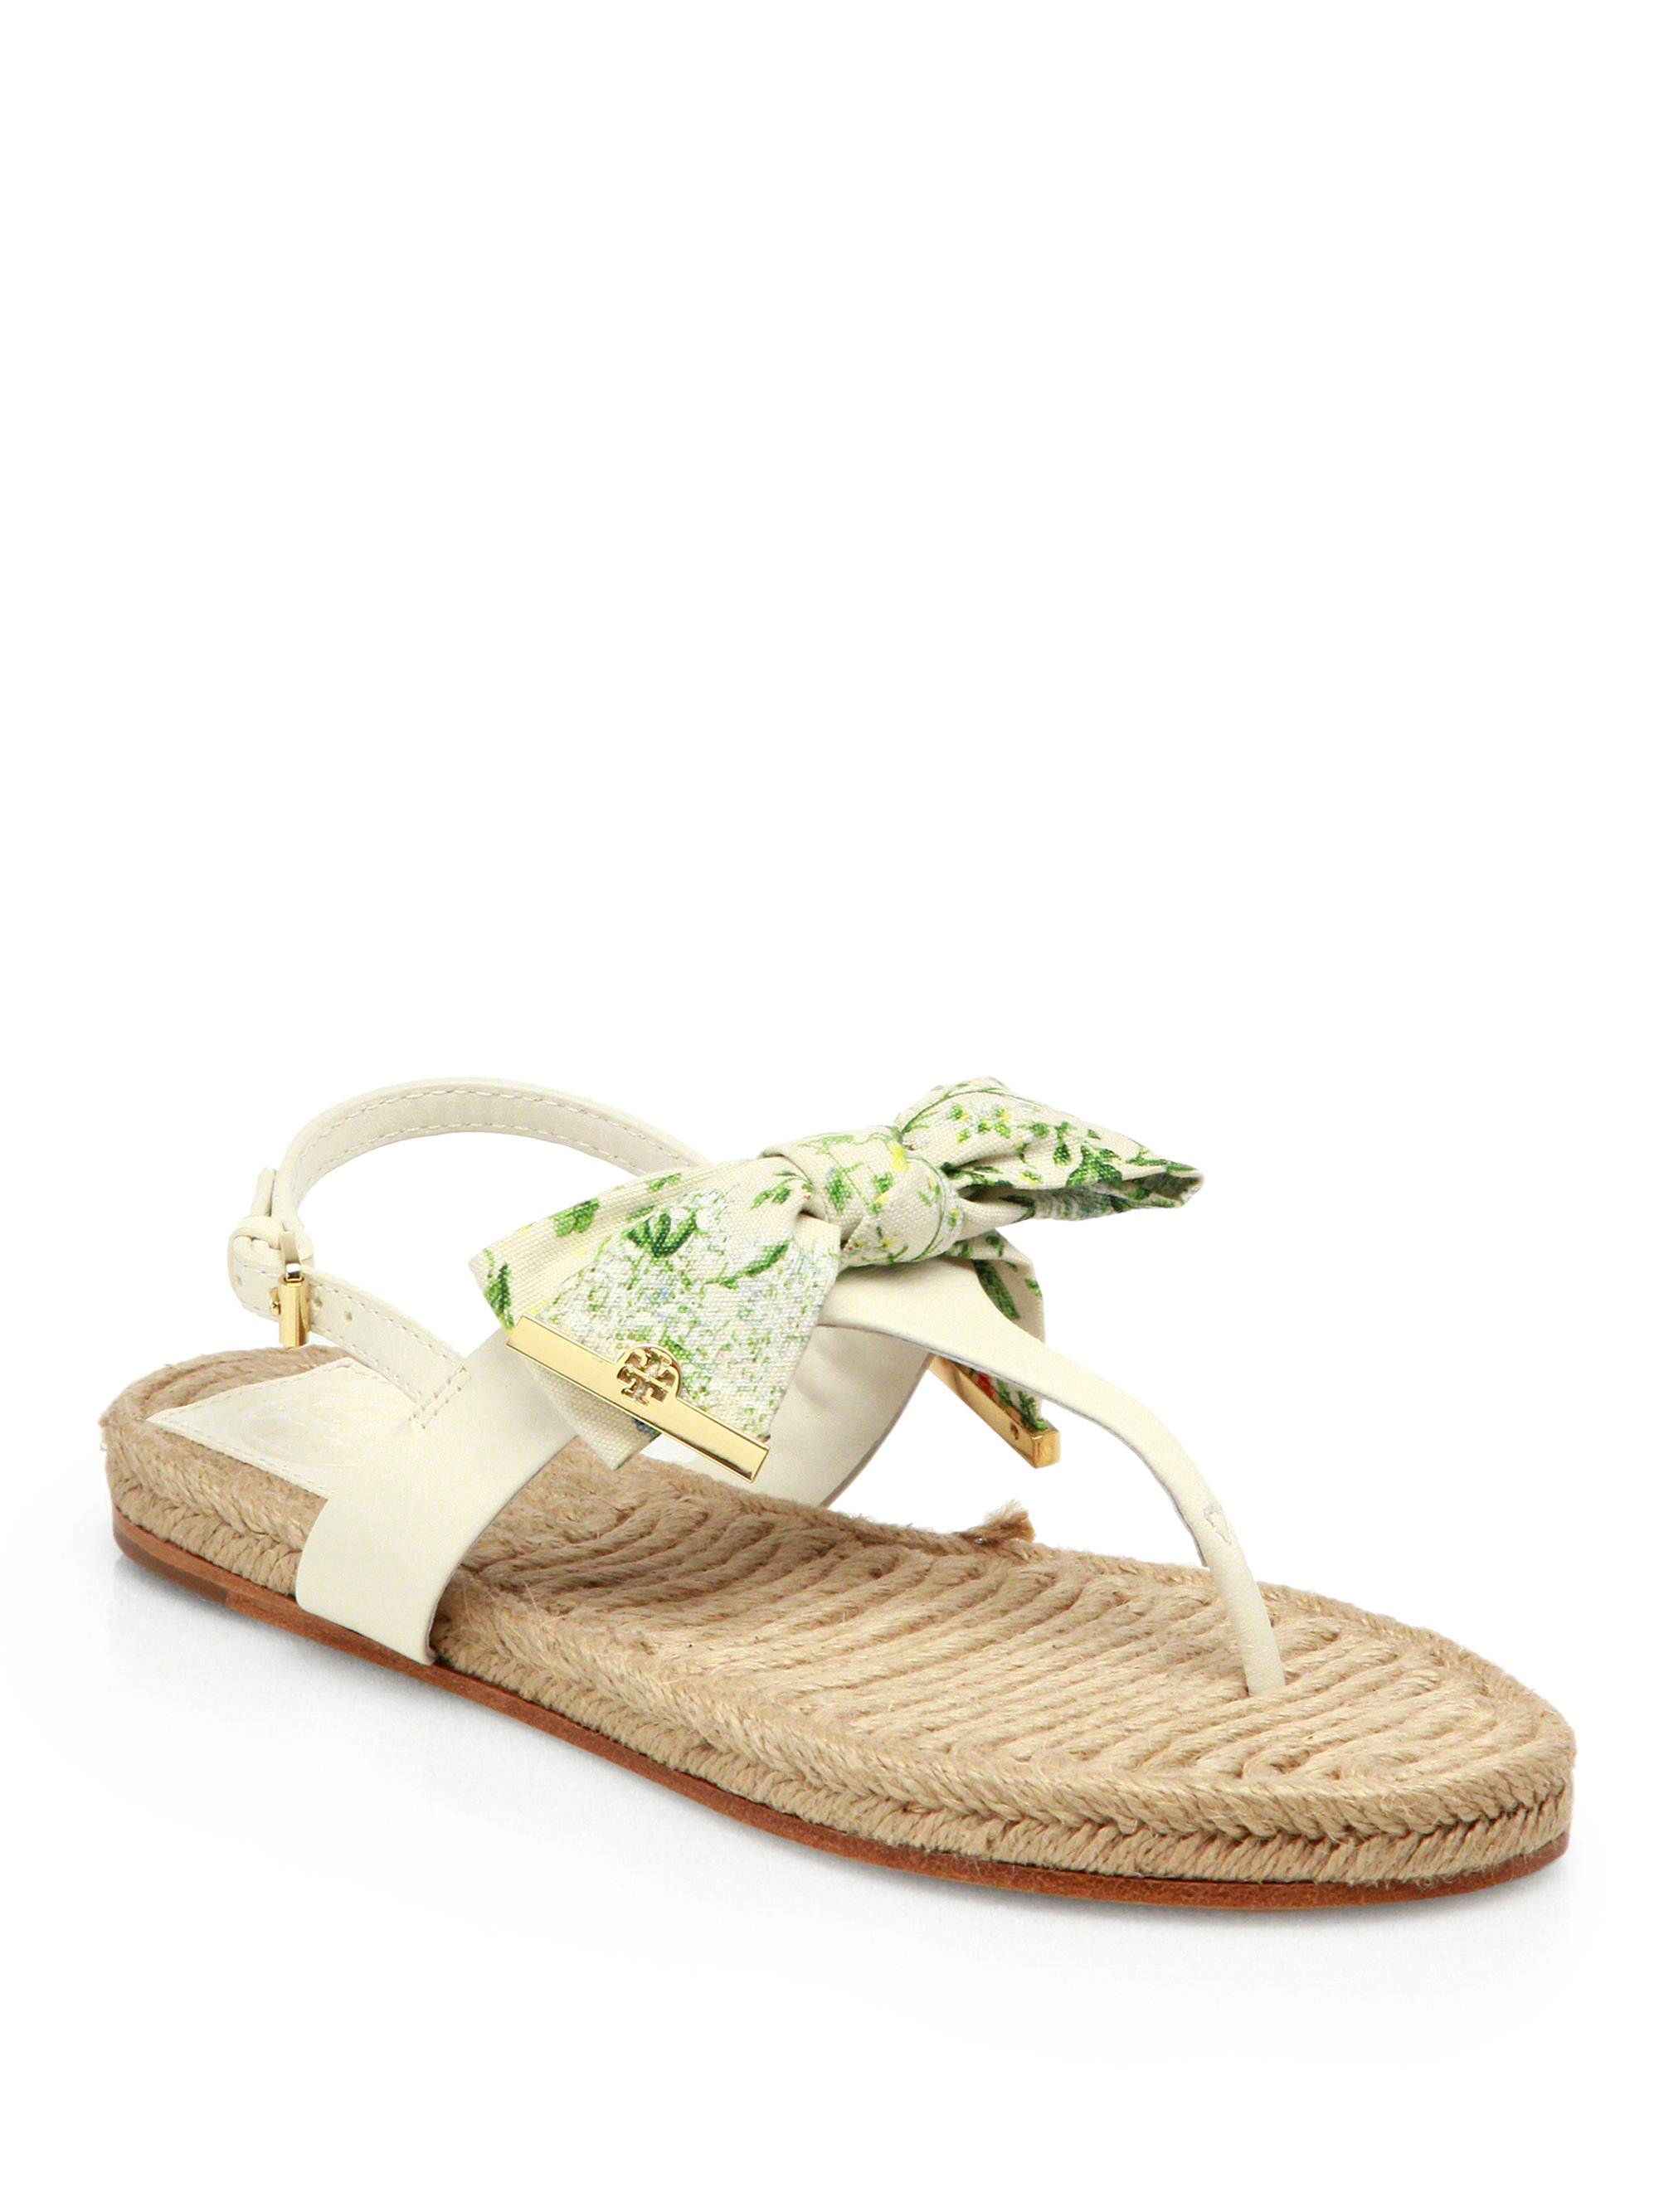 tory burch penny leather esapdrille thong sandals in white. Black Bedroom Furniture Sets. Home Design Ideas